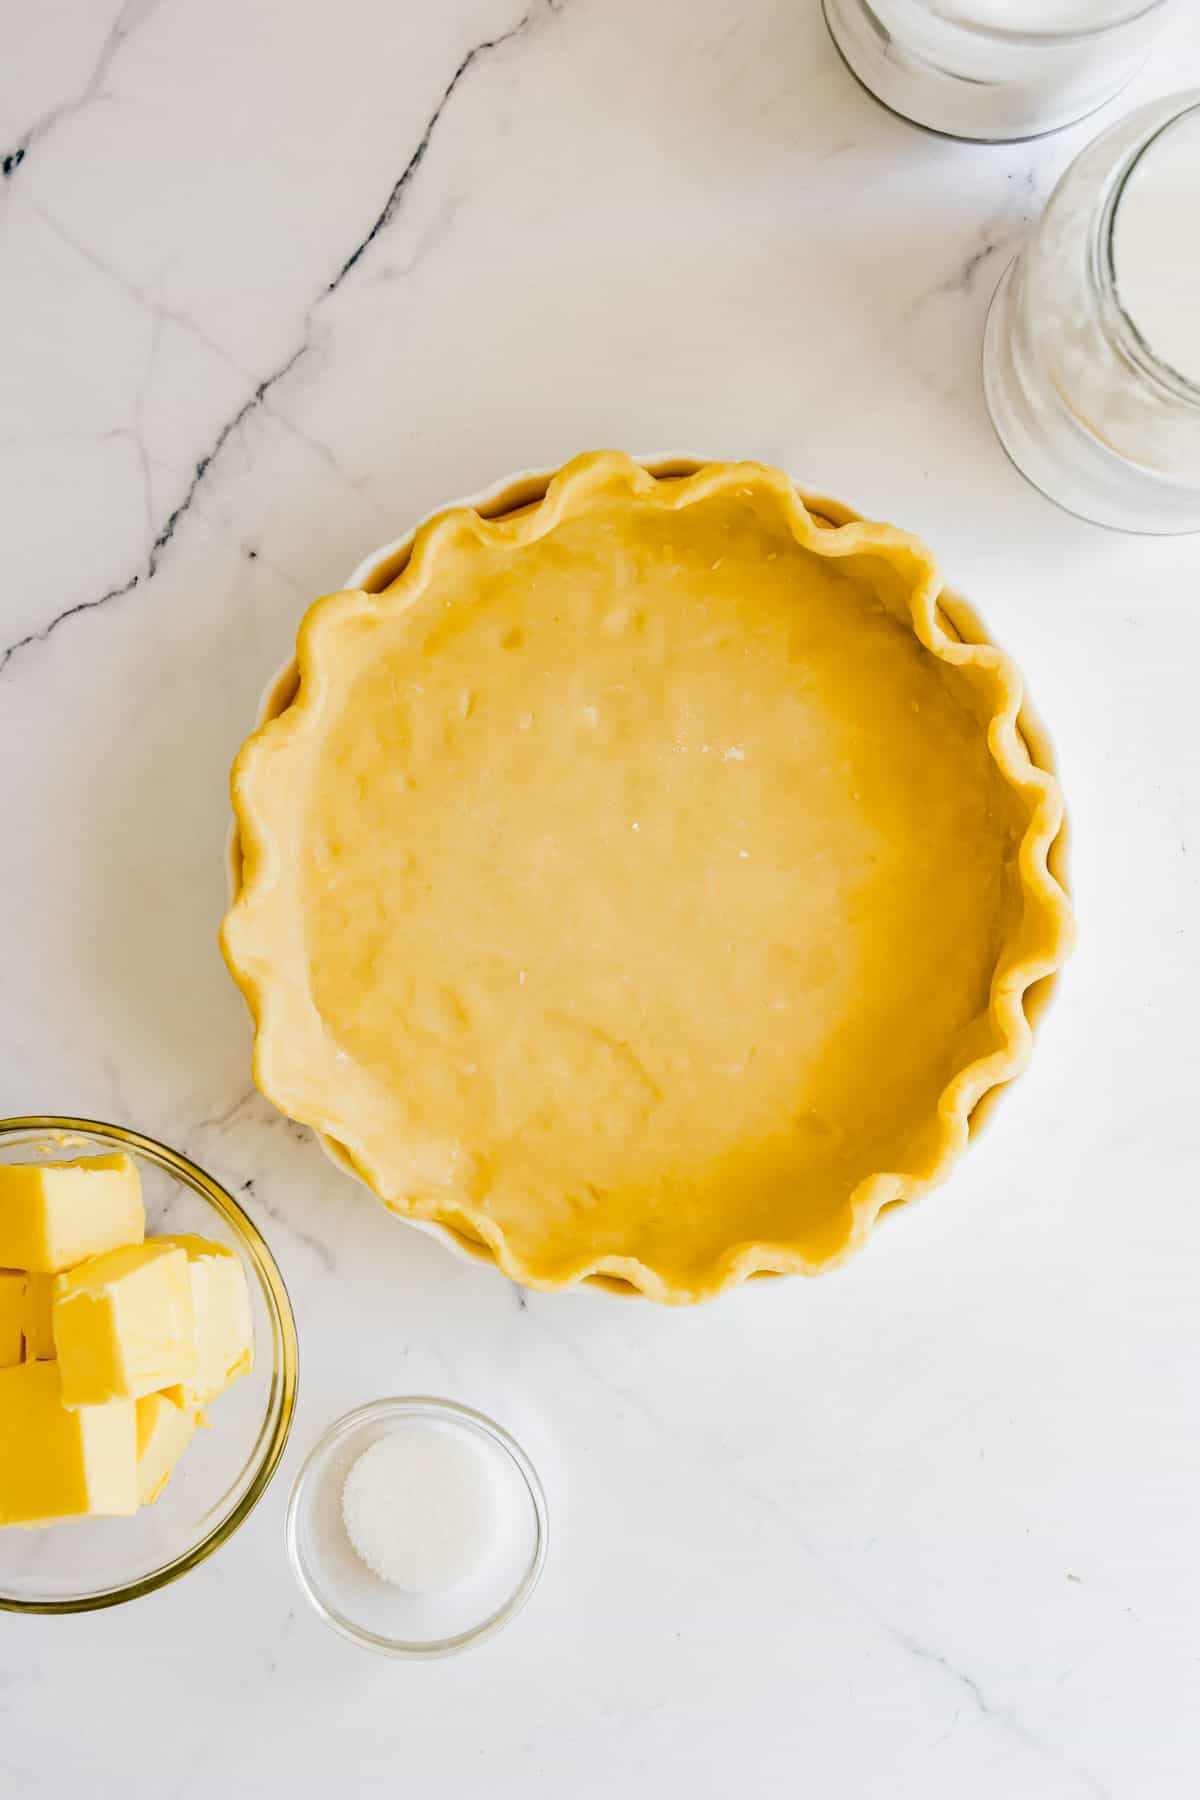 A Pie Crust with Pinched Edges on a Marble Countertop